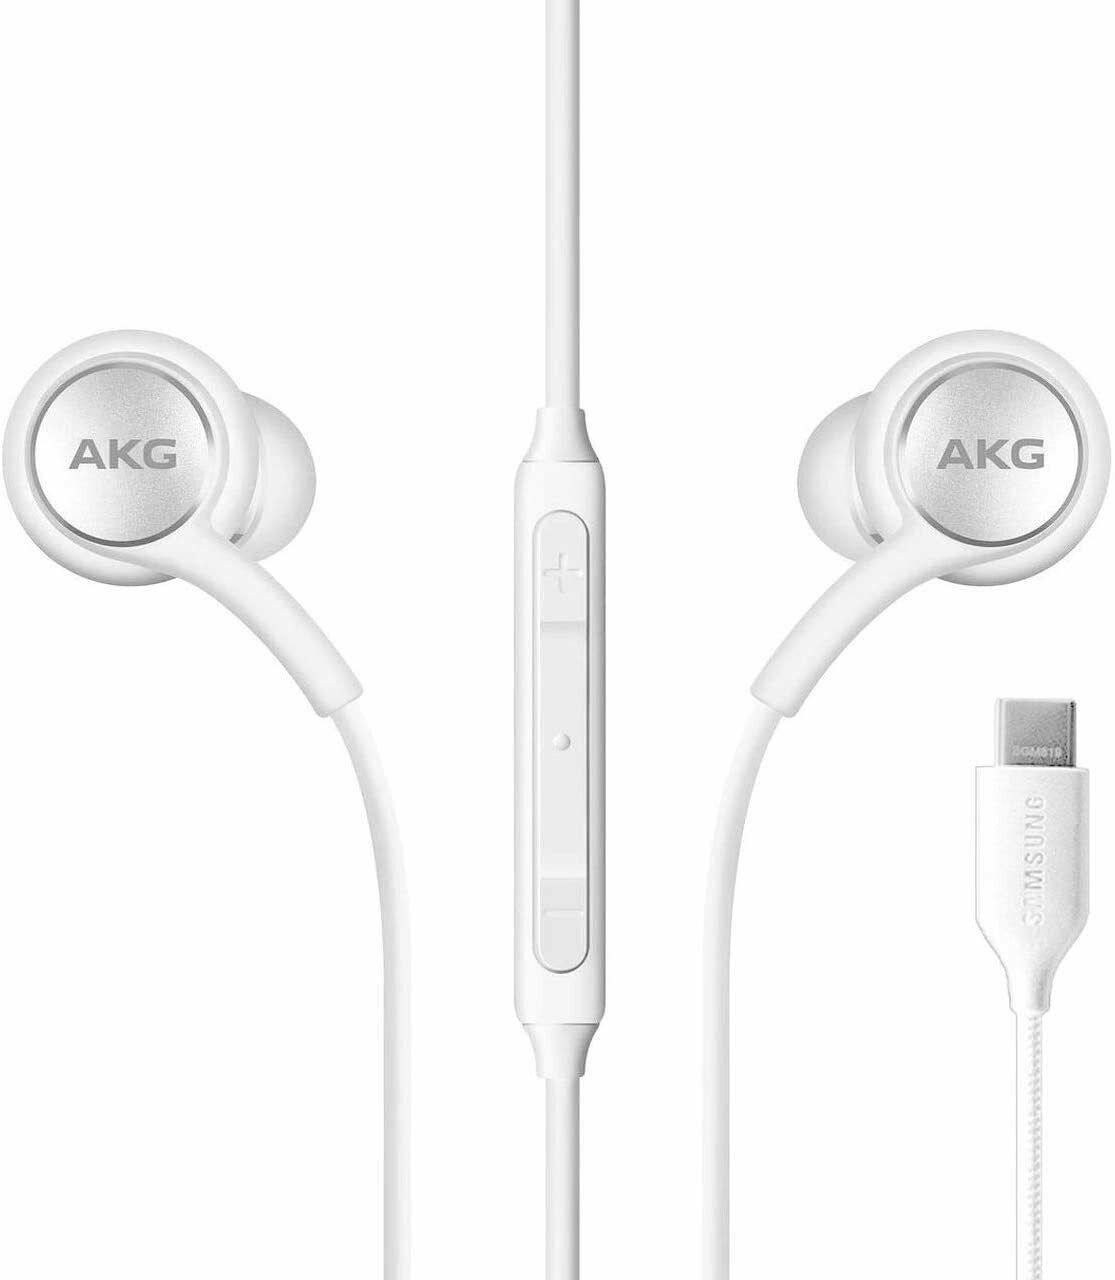 Official Samsung Galaxy Note 10 / Note 10 Plus+ AKG Type-C Headset Earphone White